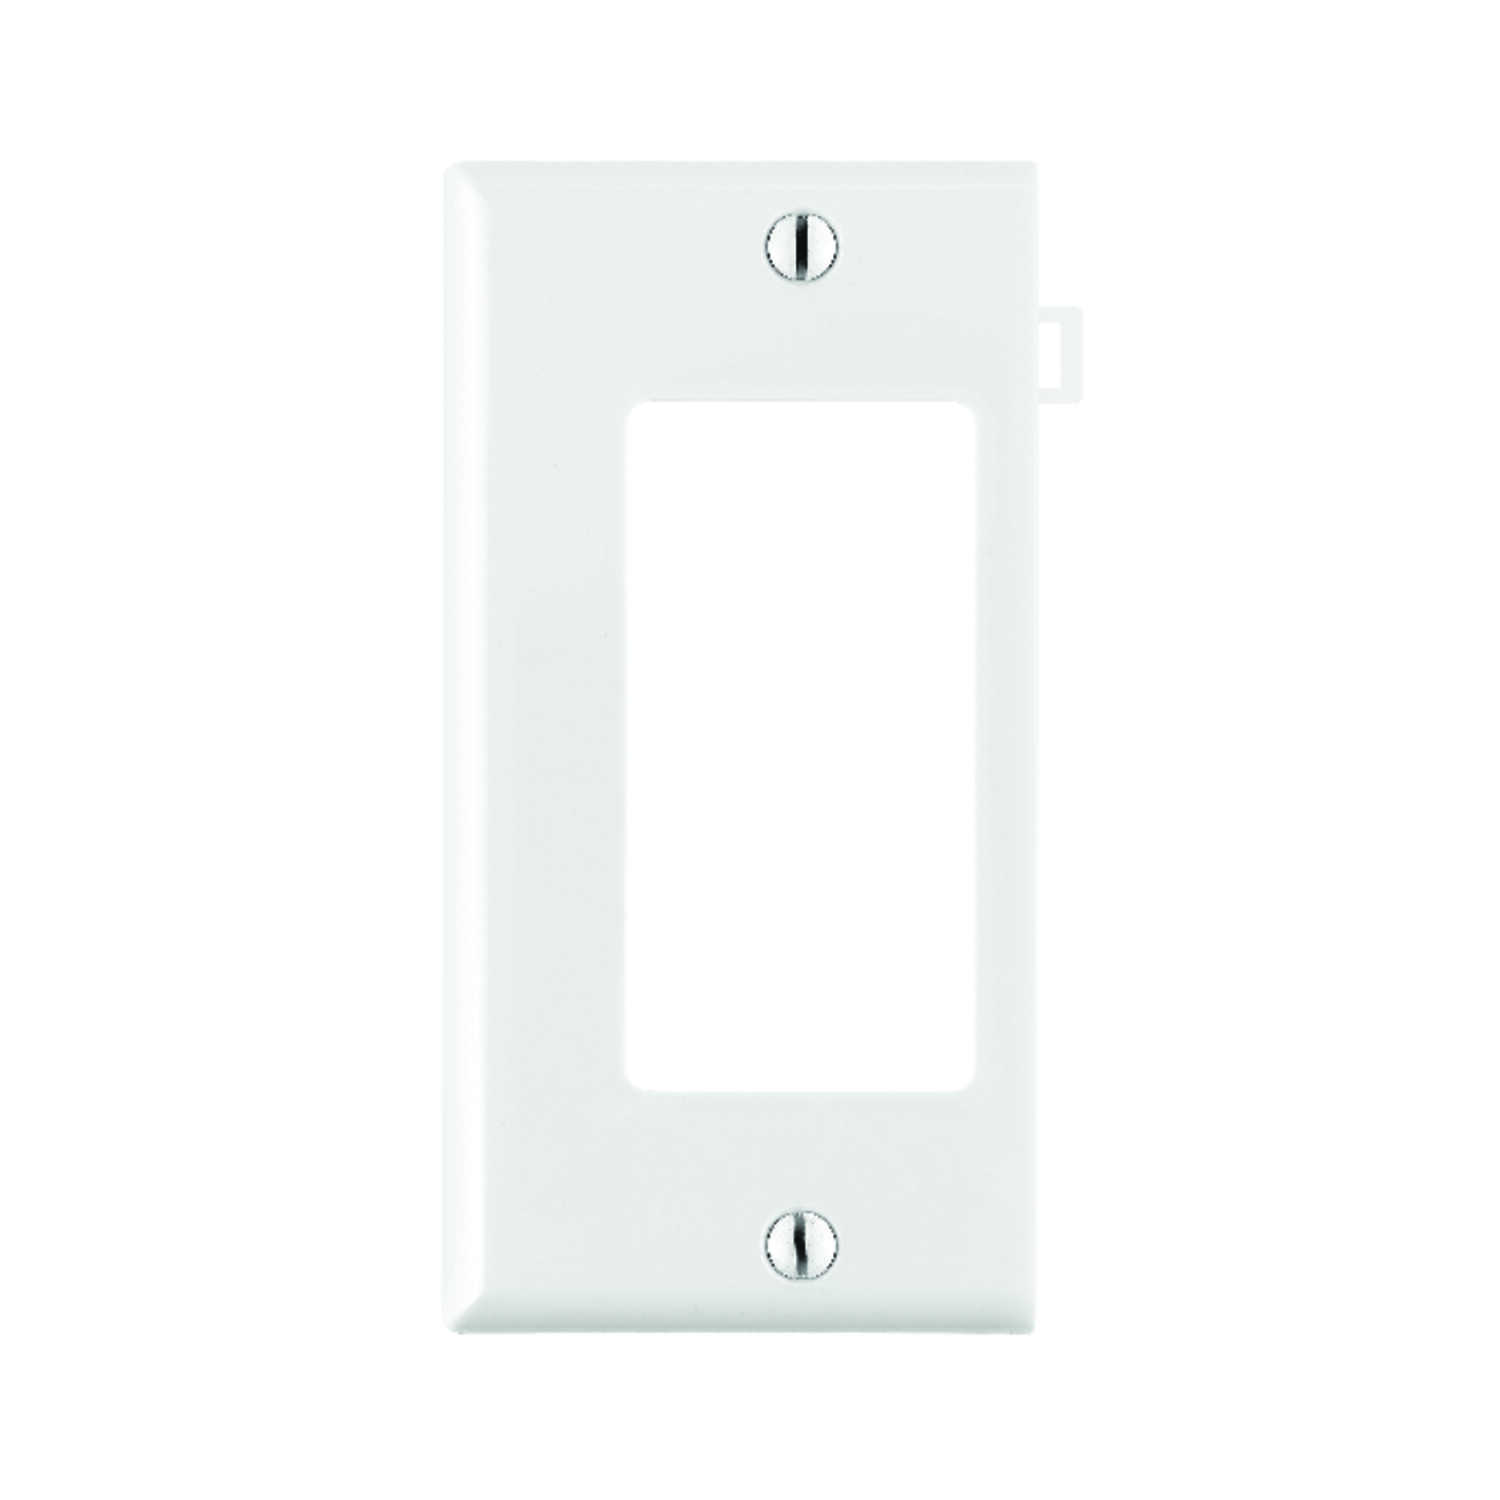 Leviton  End Section  White  1 gang Nylon  Wall Plate  1 pk GFCI/Rocker